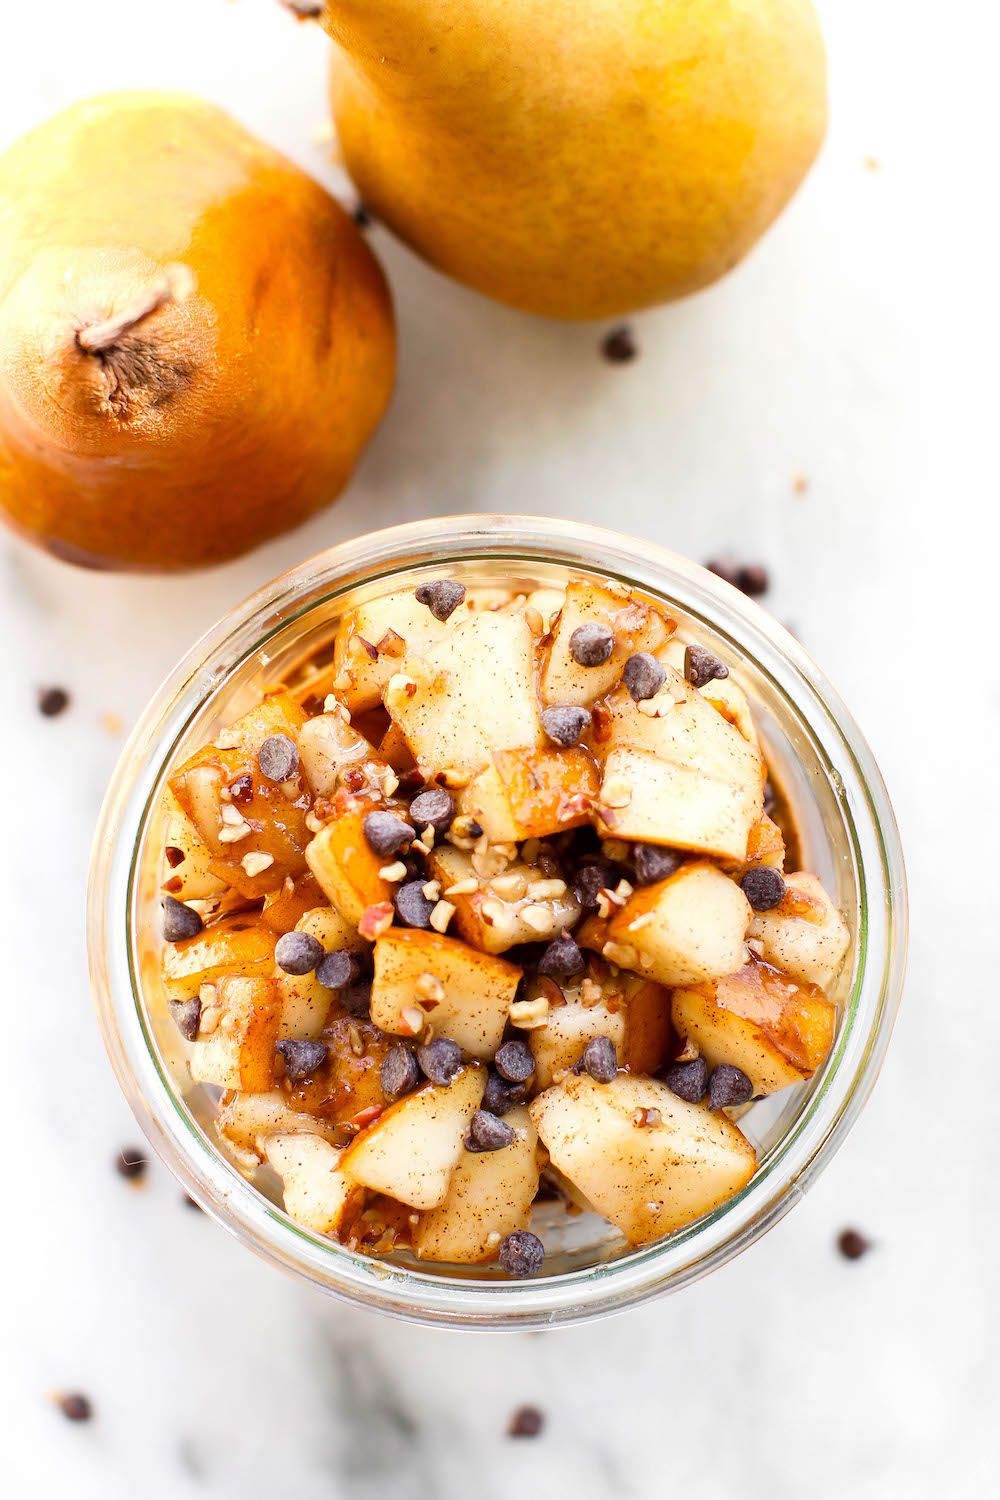 Spiced Chocolate Pear Overnight Oats